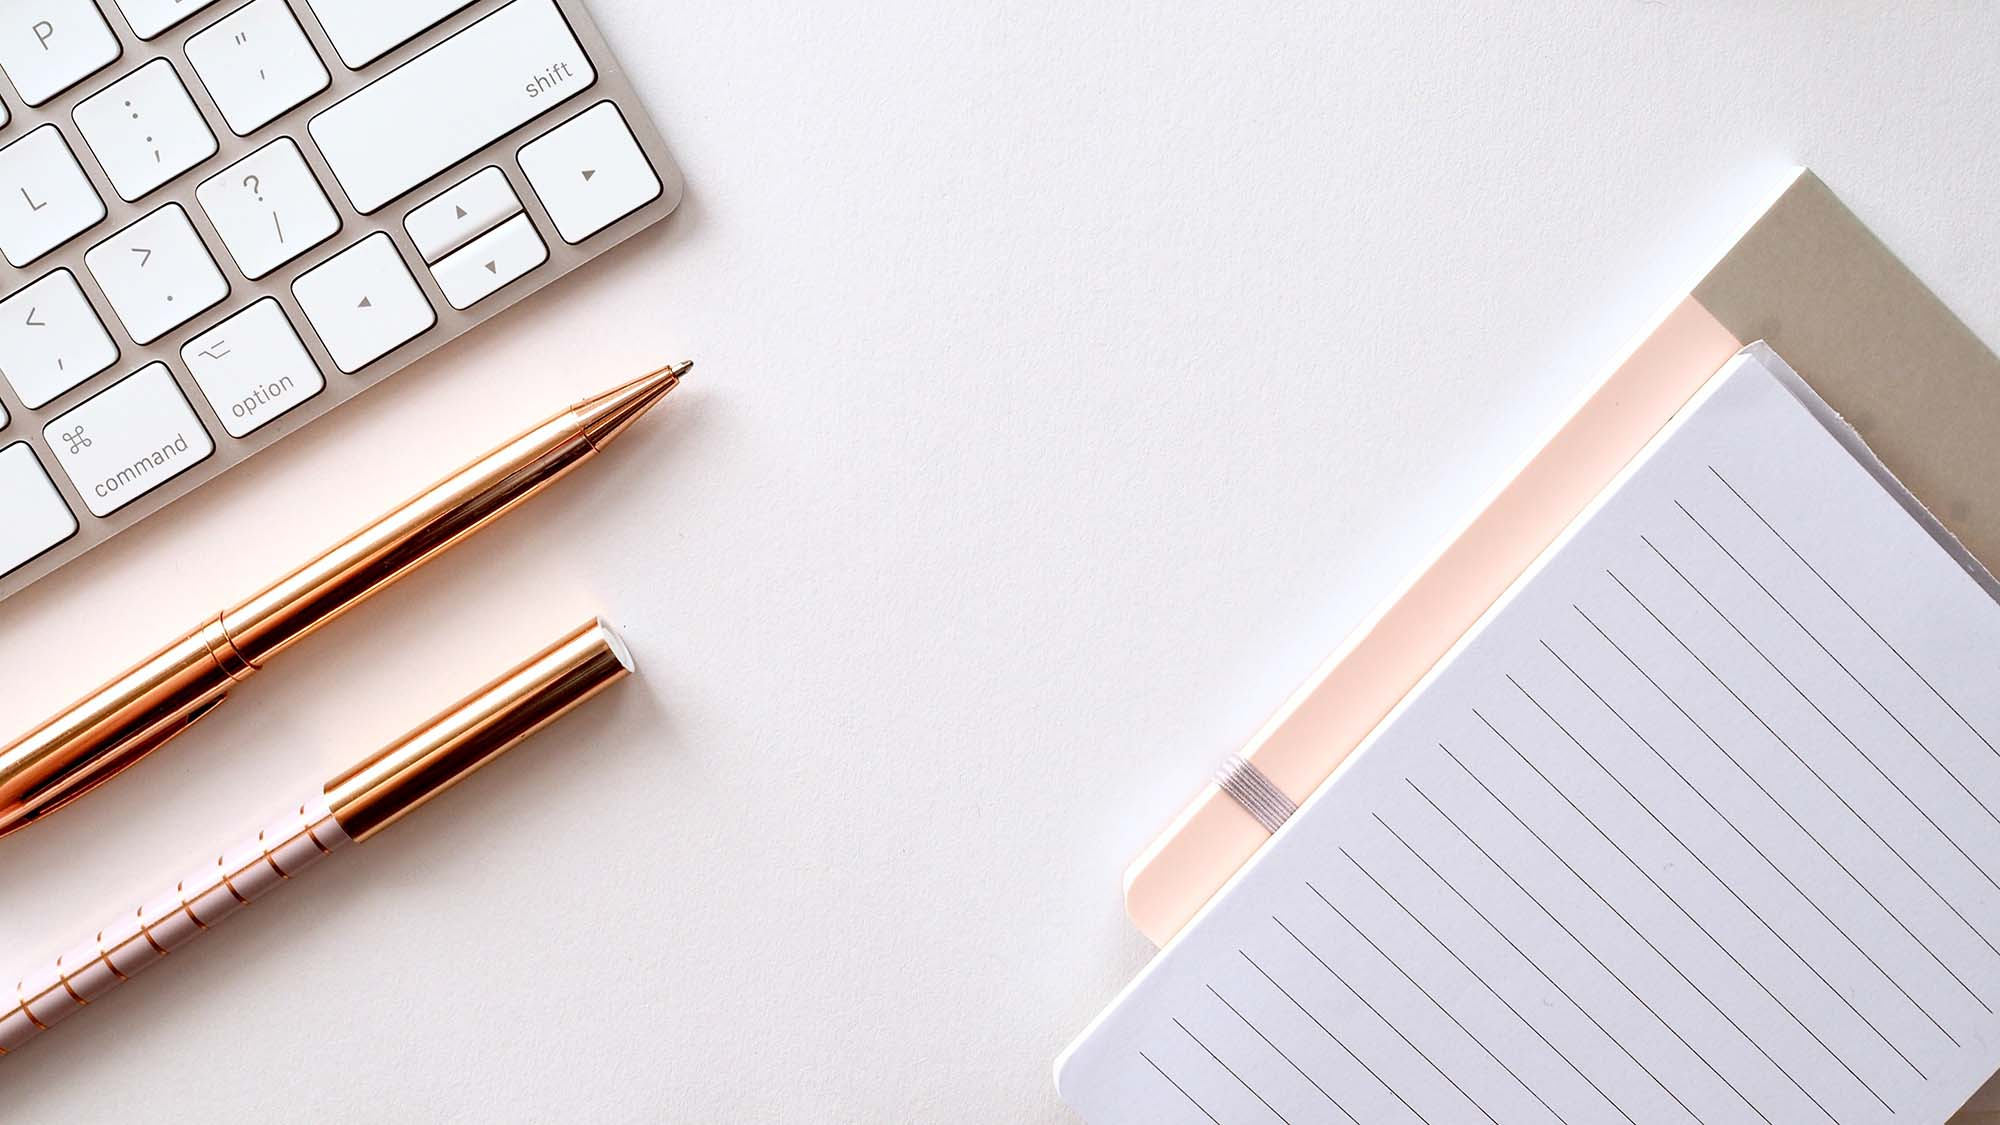 A keyboard, two rose gold pens, and a notepad on a desk